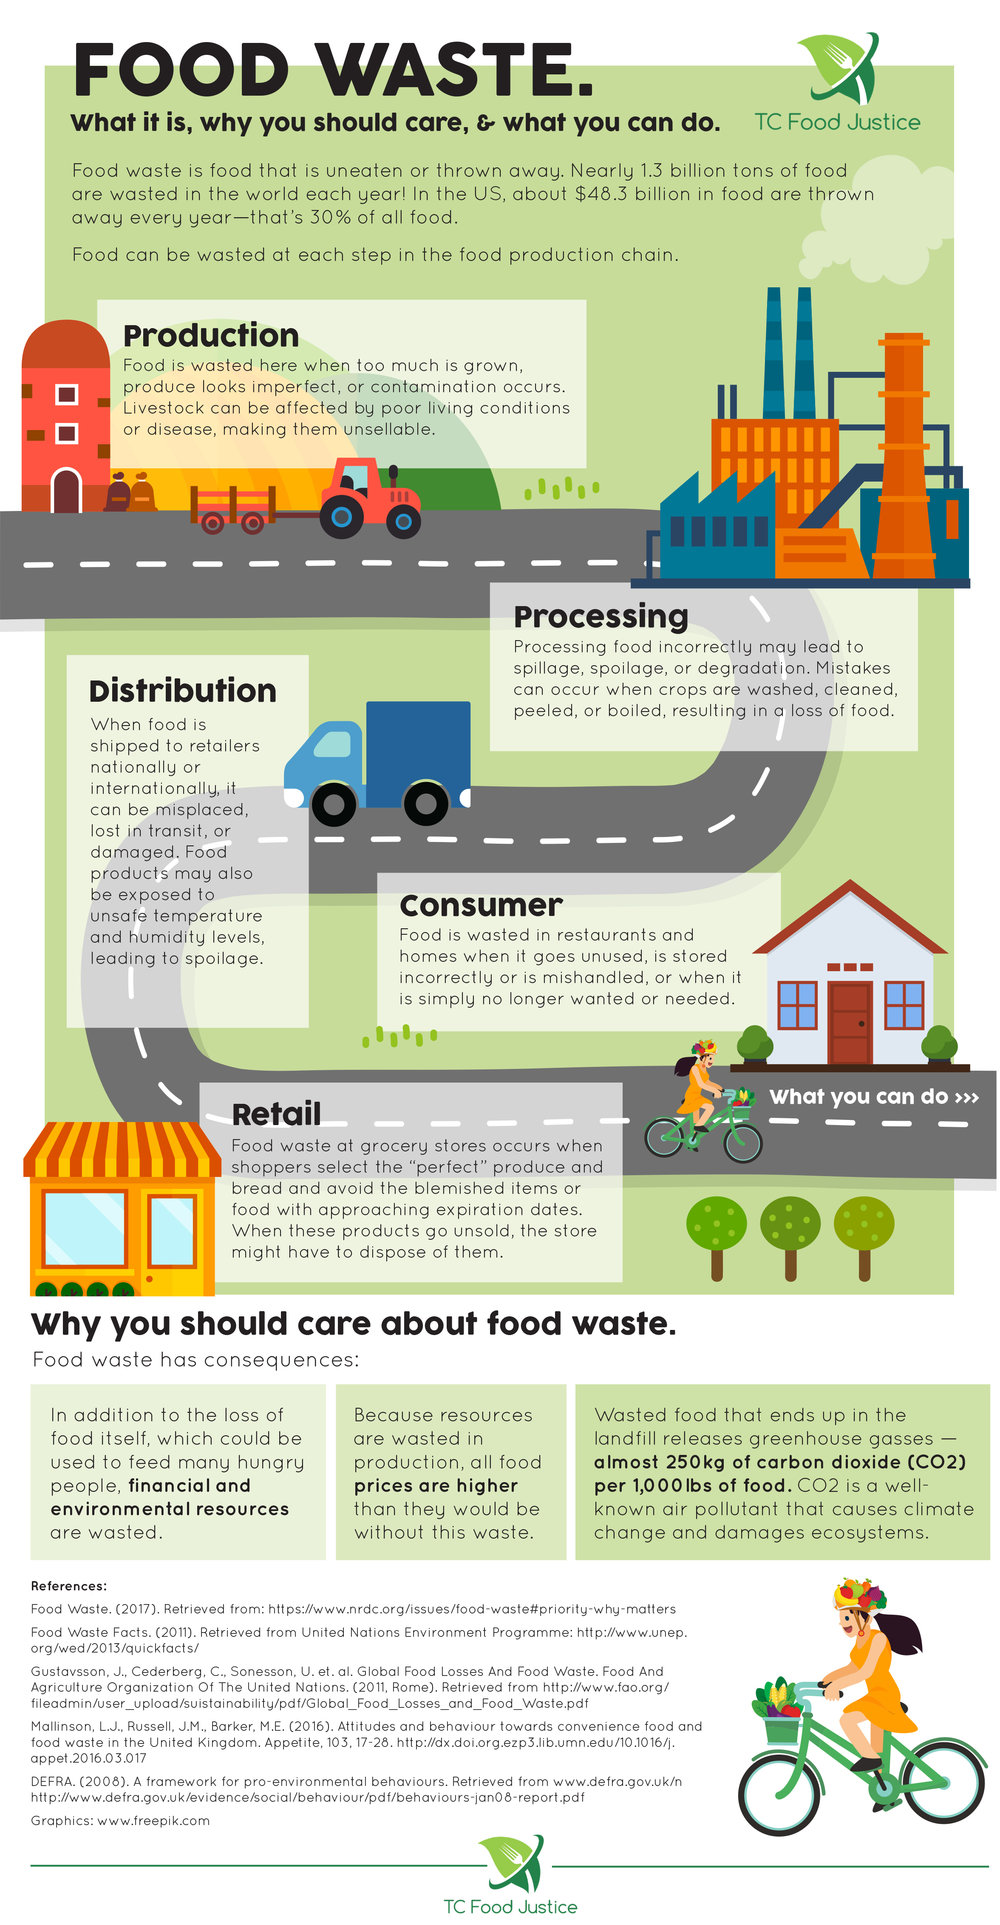 FoodWaste_FactSheet_for_web.jpg